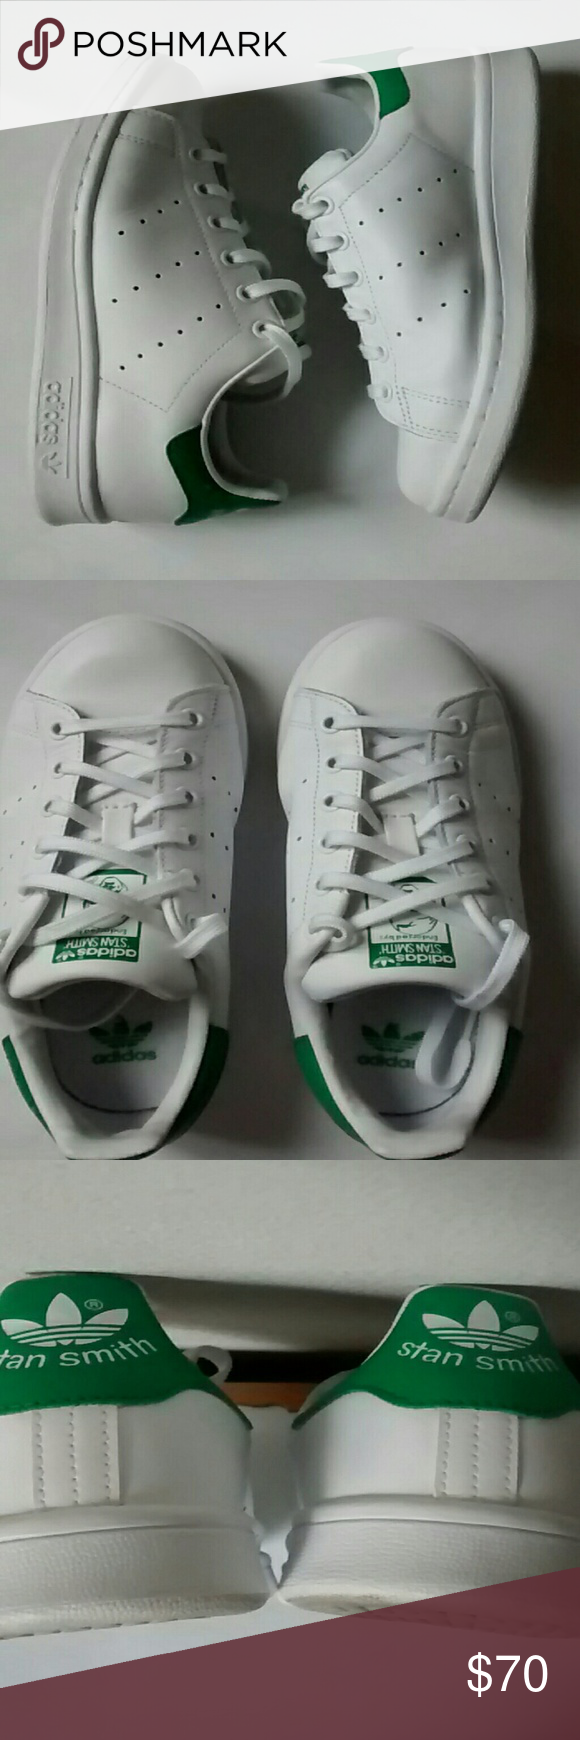 Adidas Stan Smith Worn once, please view pics which show excellent condition, these are big kids size 5 Adidas Shoes Sneakers